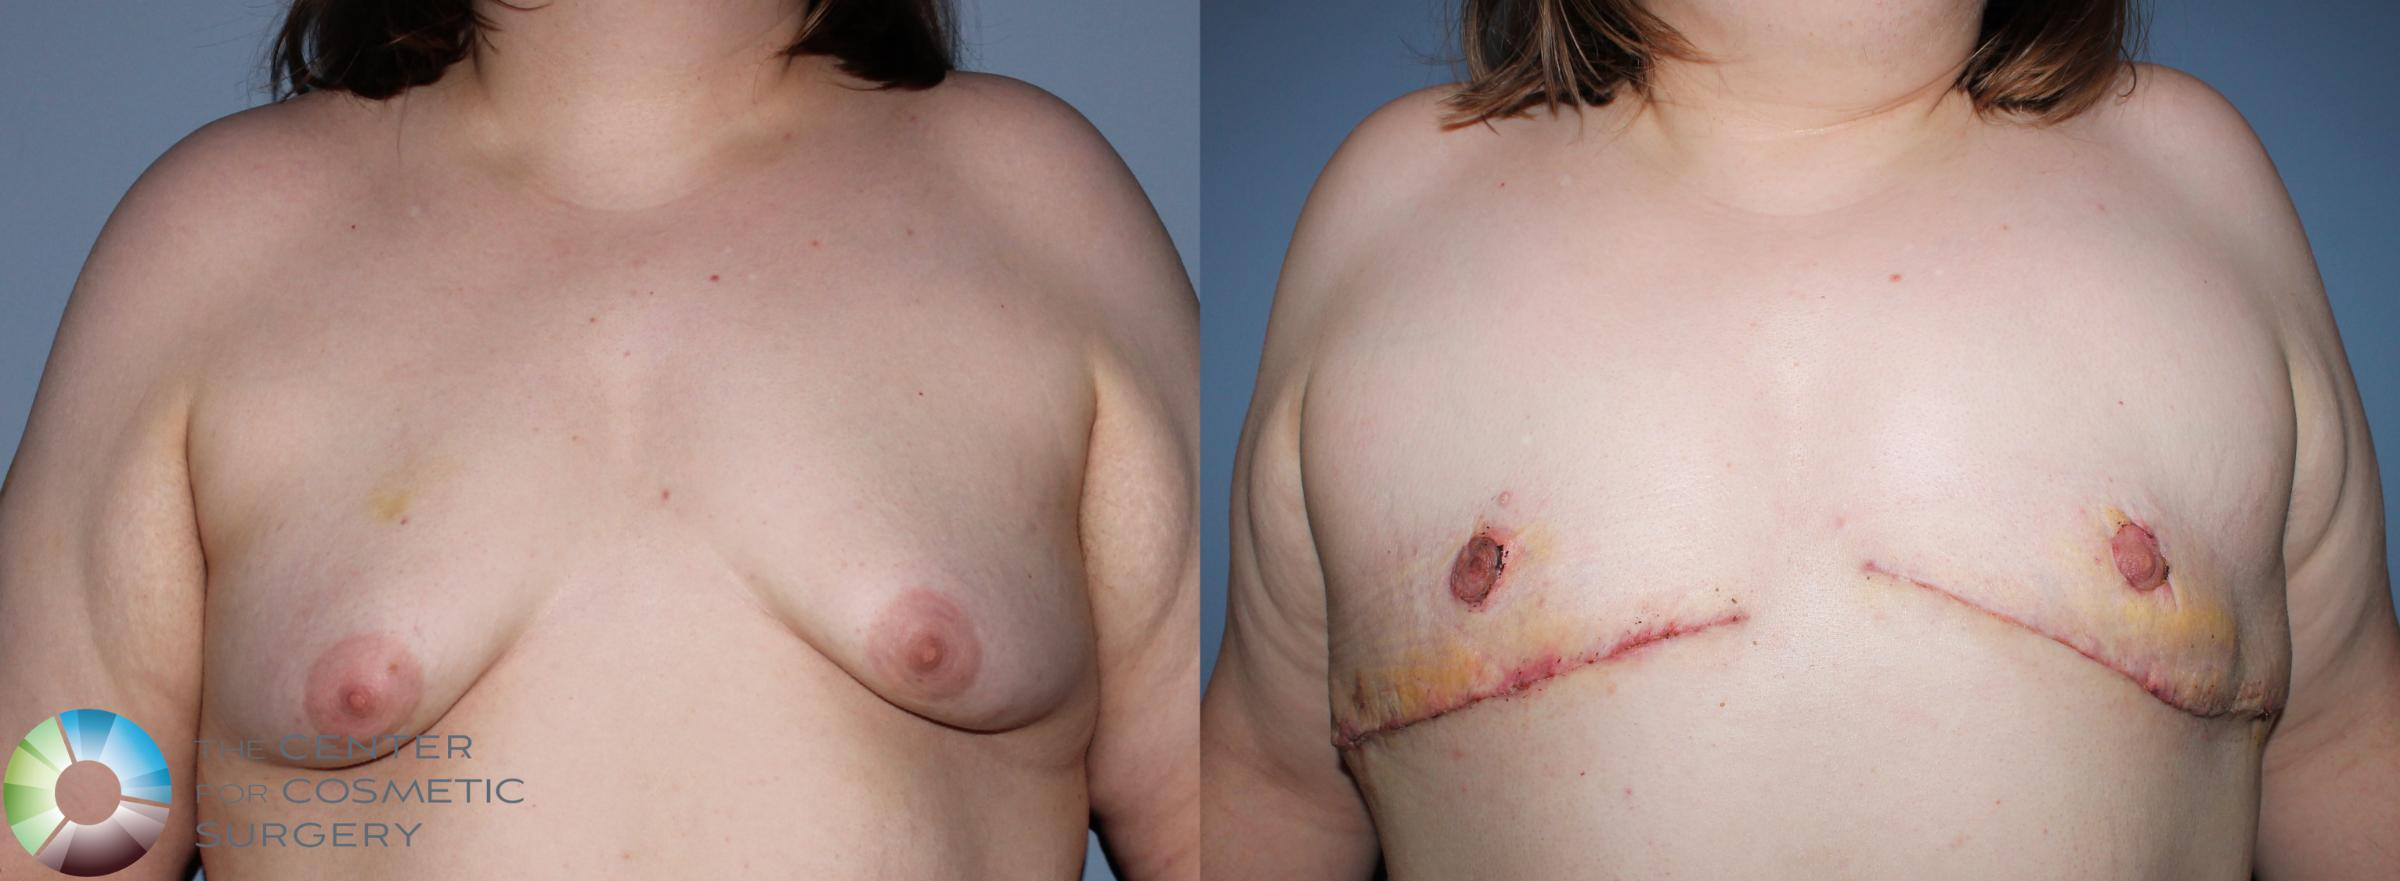 FTM Top Surgery/Chest Masculinization Case 11200 Before & After Front | Golden, CO | The Center for Cosmetic Surgery